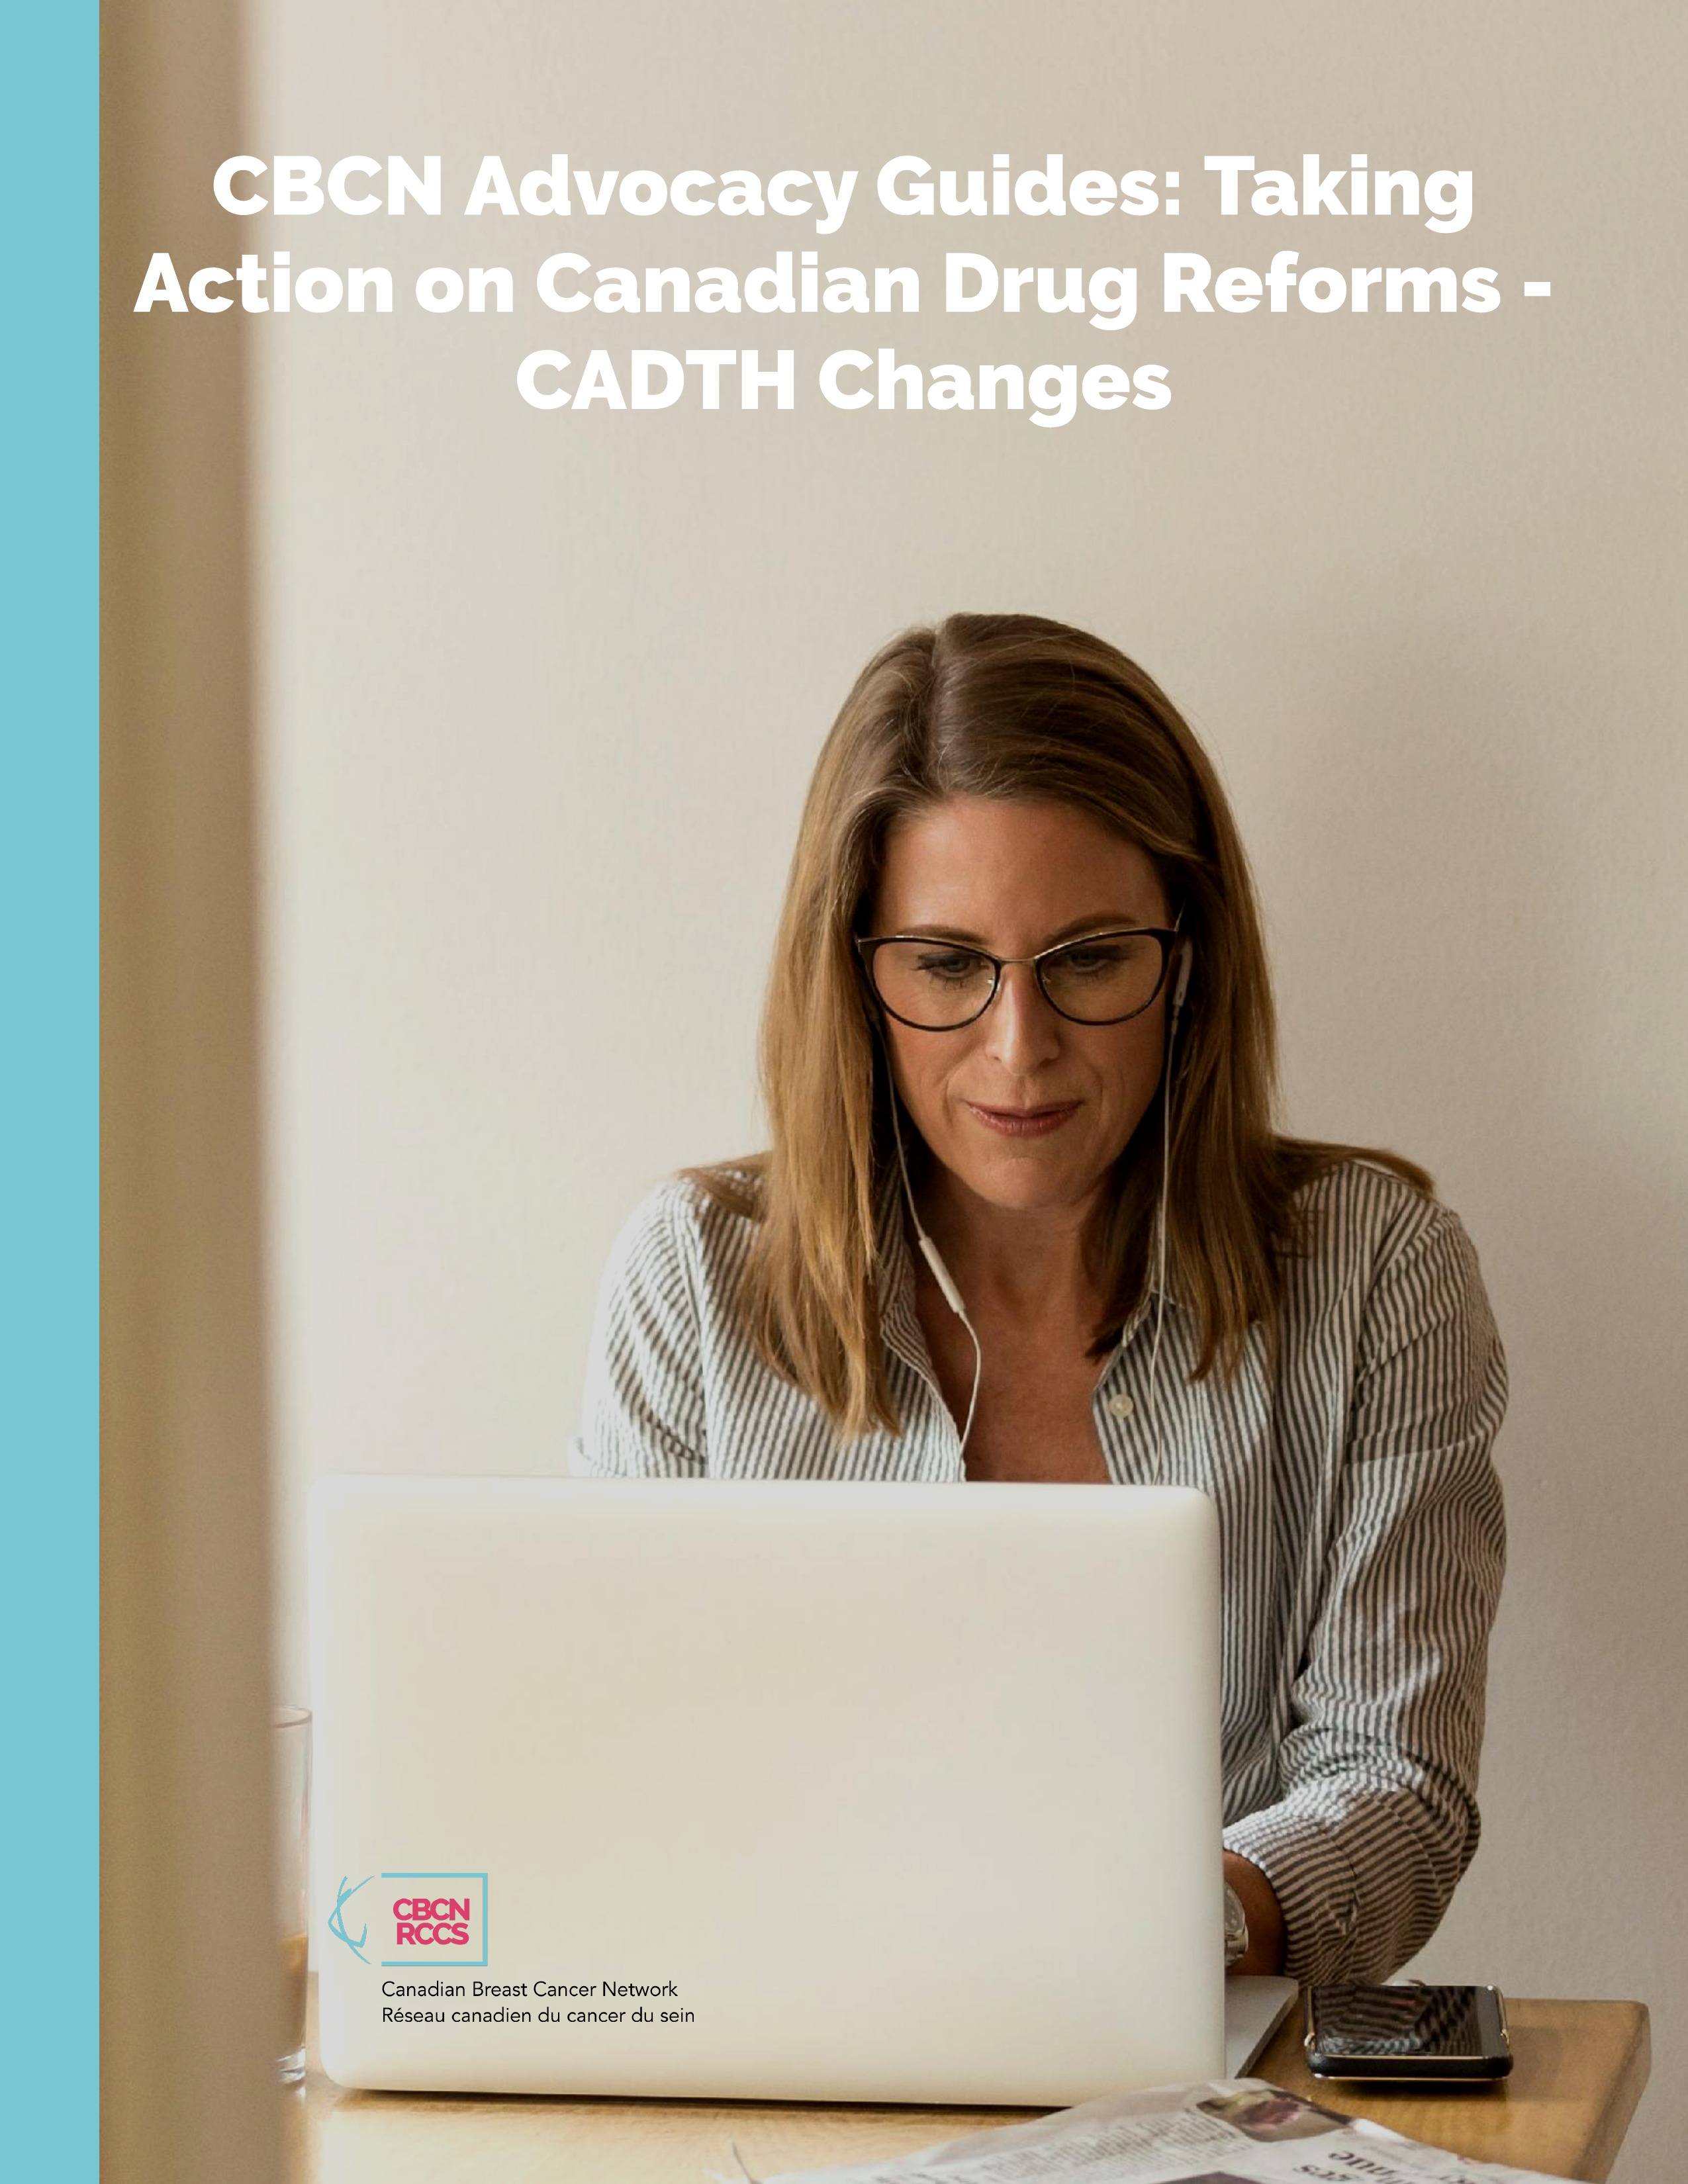 Taking Action on Canadian Drug Reforms - CADTH Changes